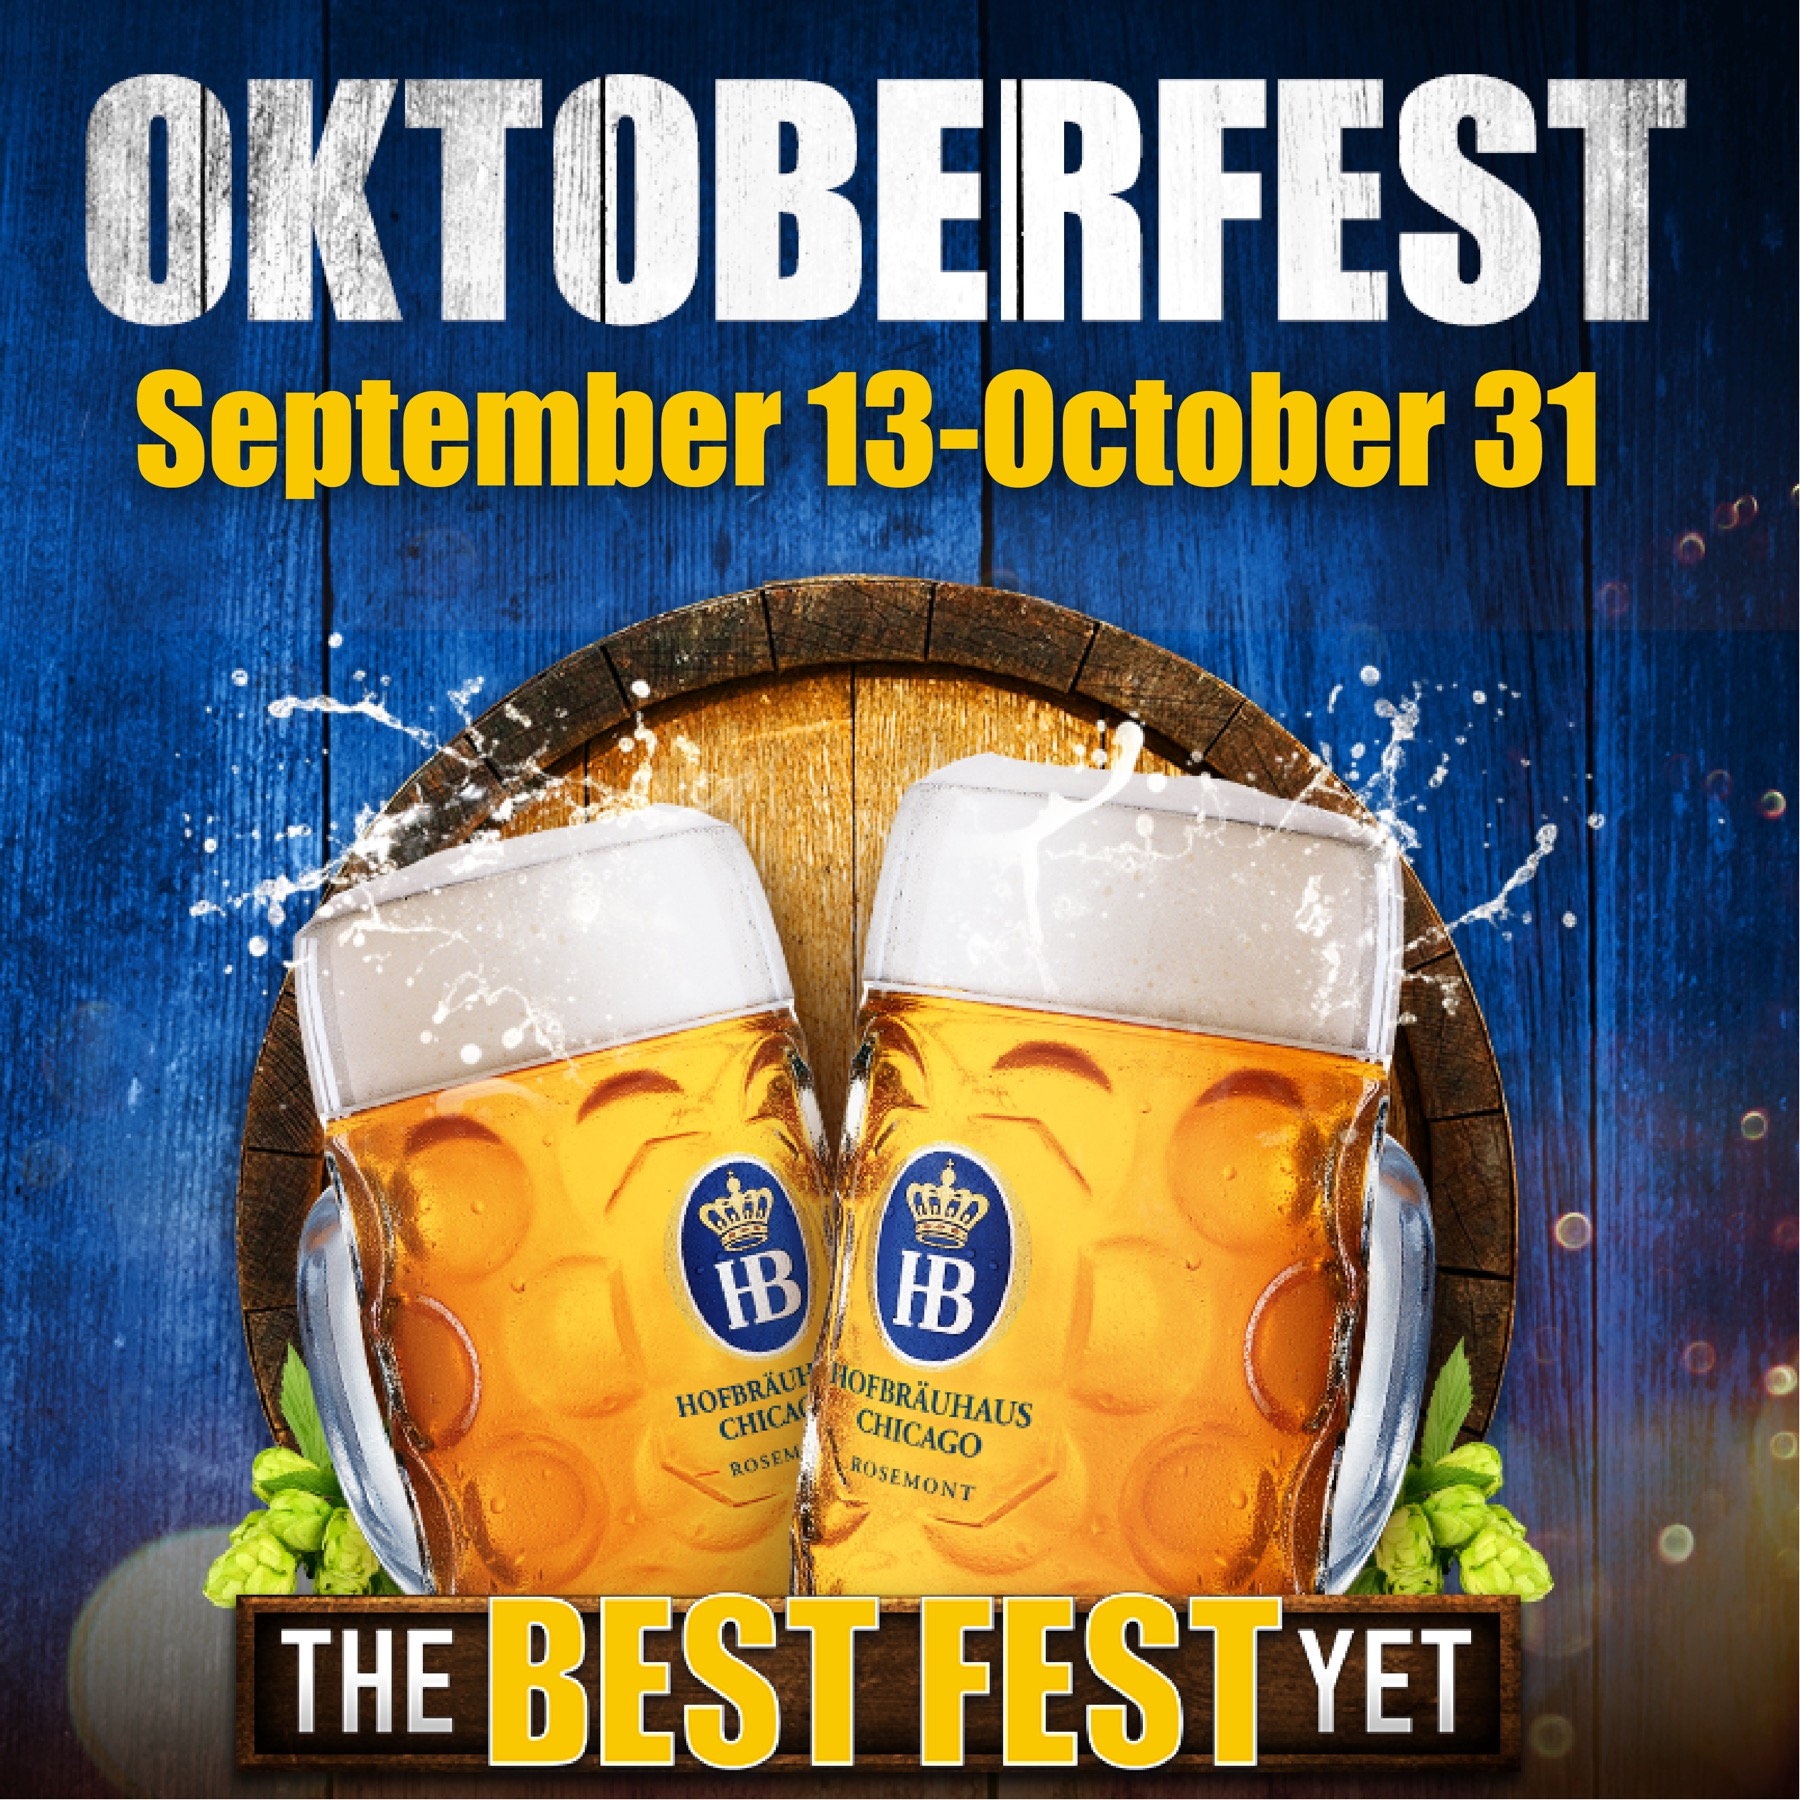 Hofbräuhaus Chicago's Seventh Annual Oktoberfest Celebration